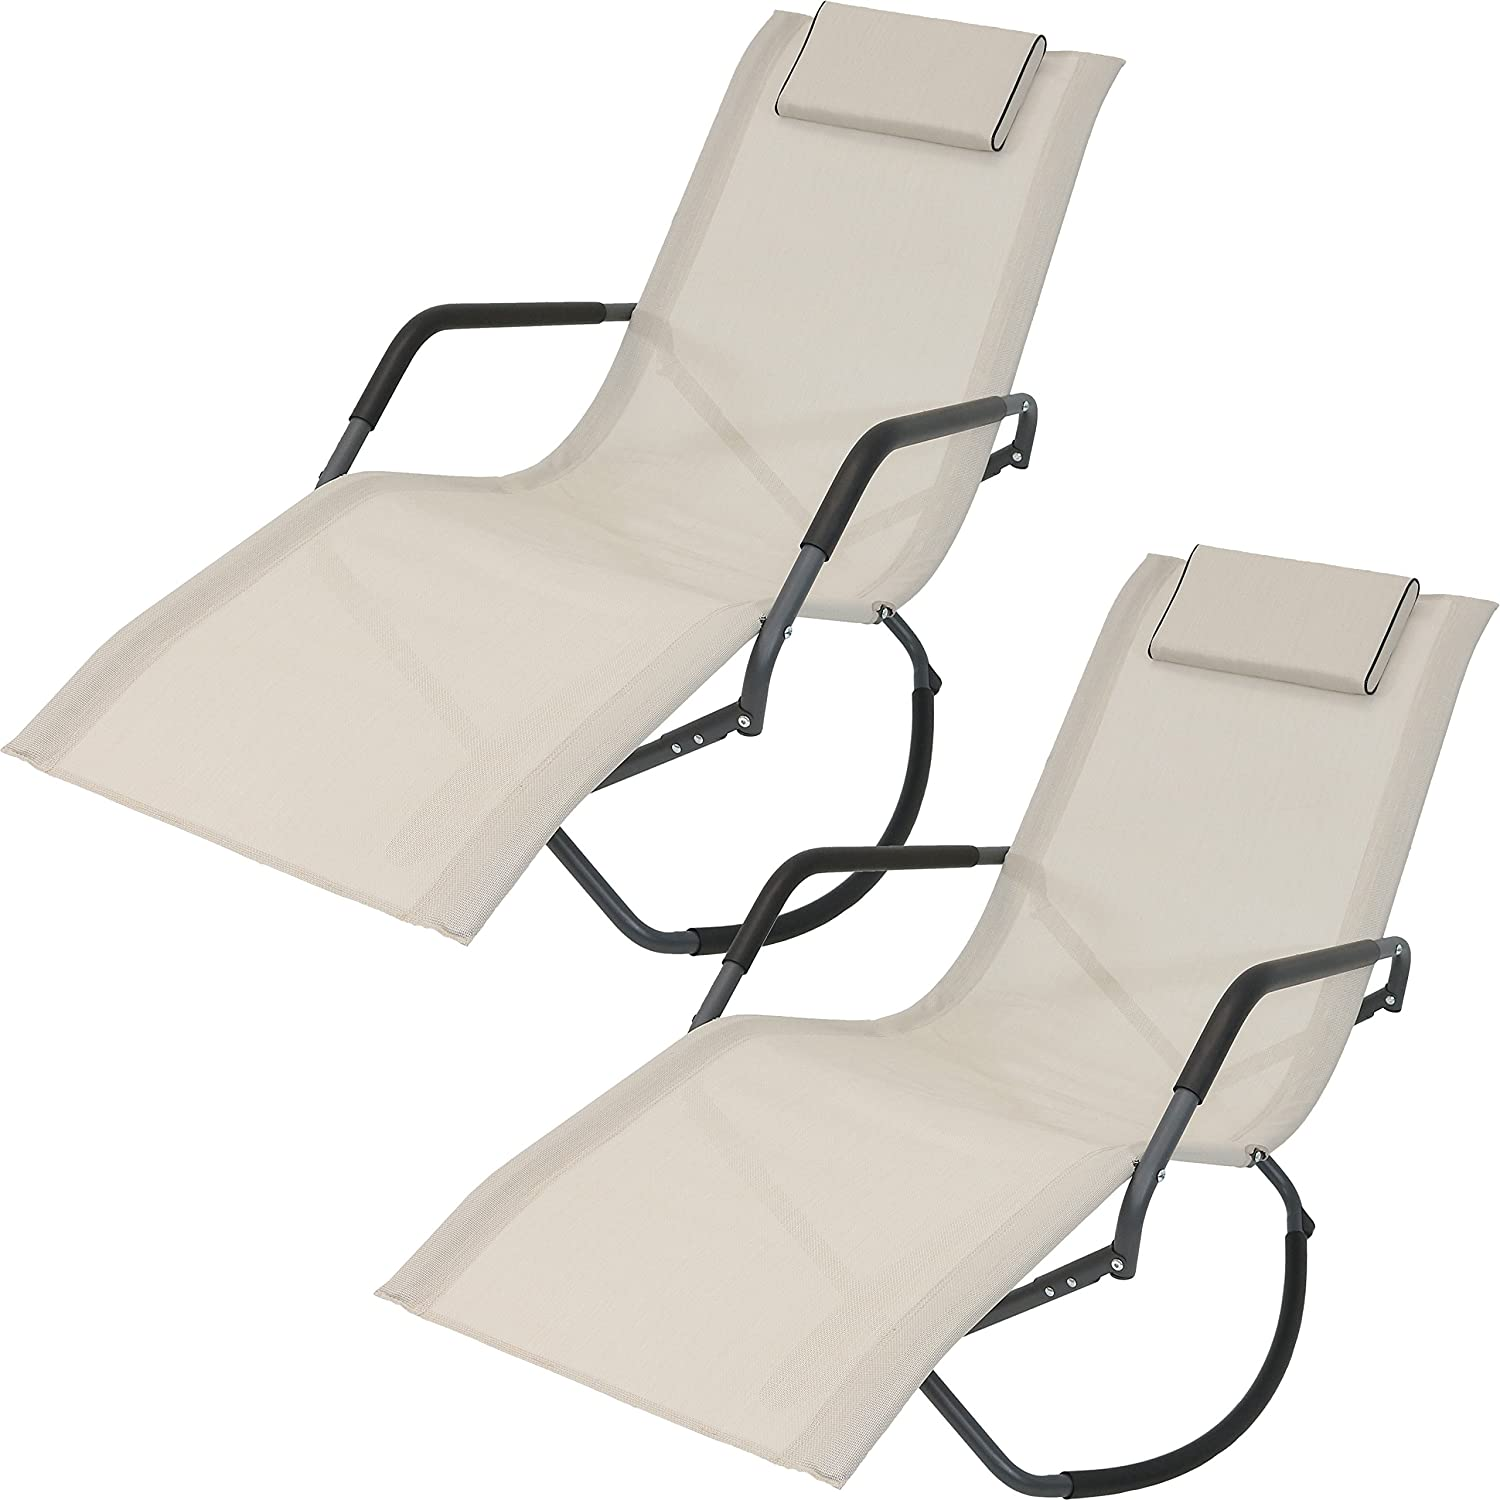 Outstanding Sunnydaze Rocking Chaise Lounge Chair With Headrest Pillow Outdoor Folding Patio Lounger Beige Set Of 2 Forskolin Free Trial Chair Design Images Forskolin Free Trialorg